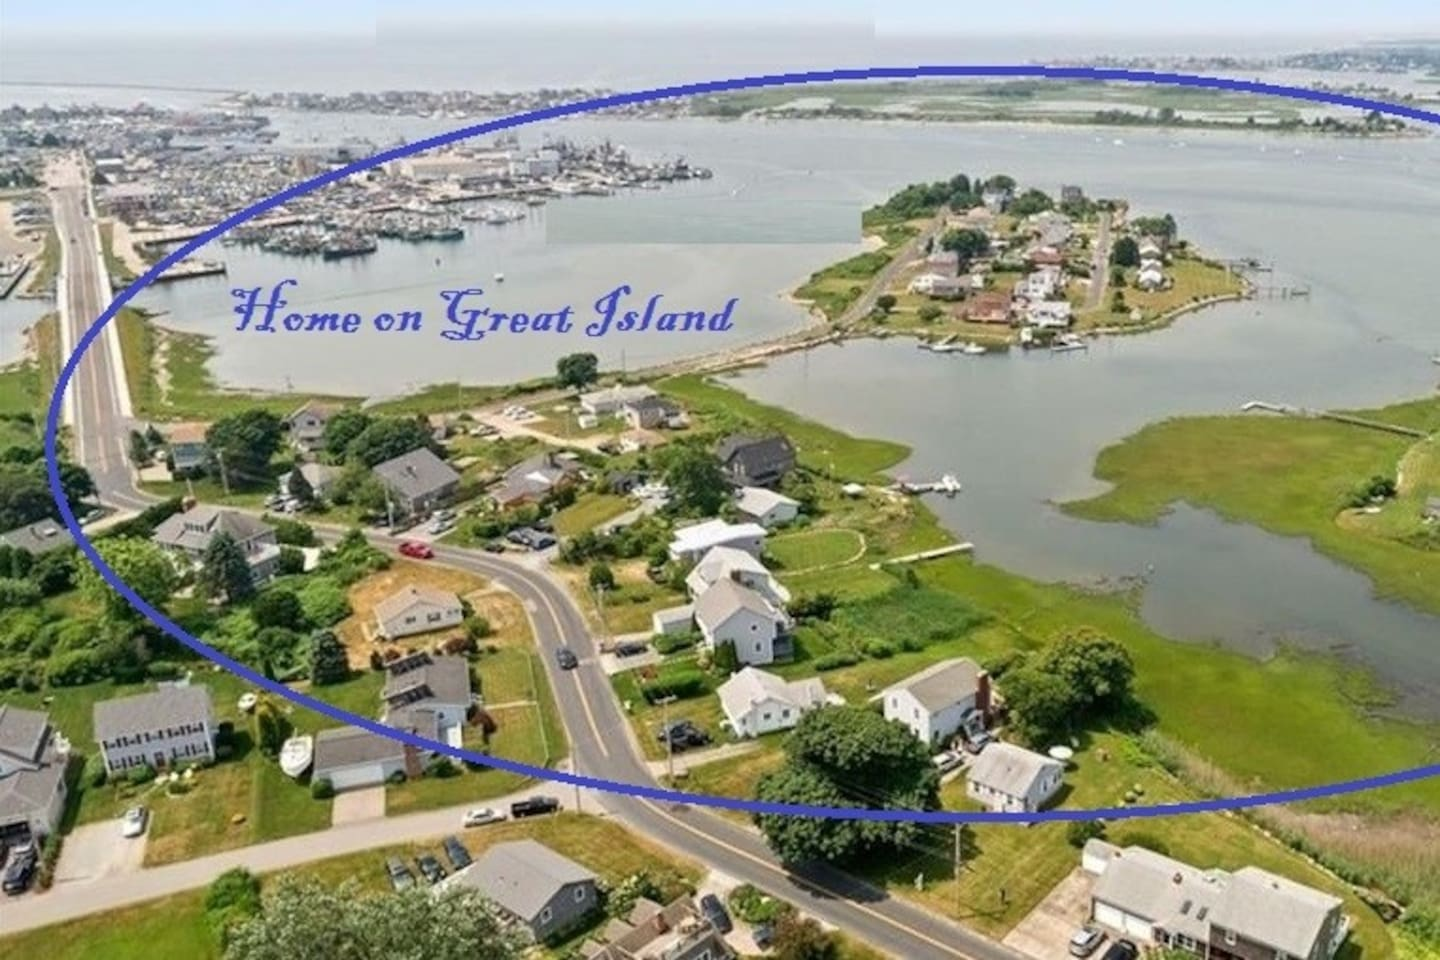 Home is on Great Island